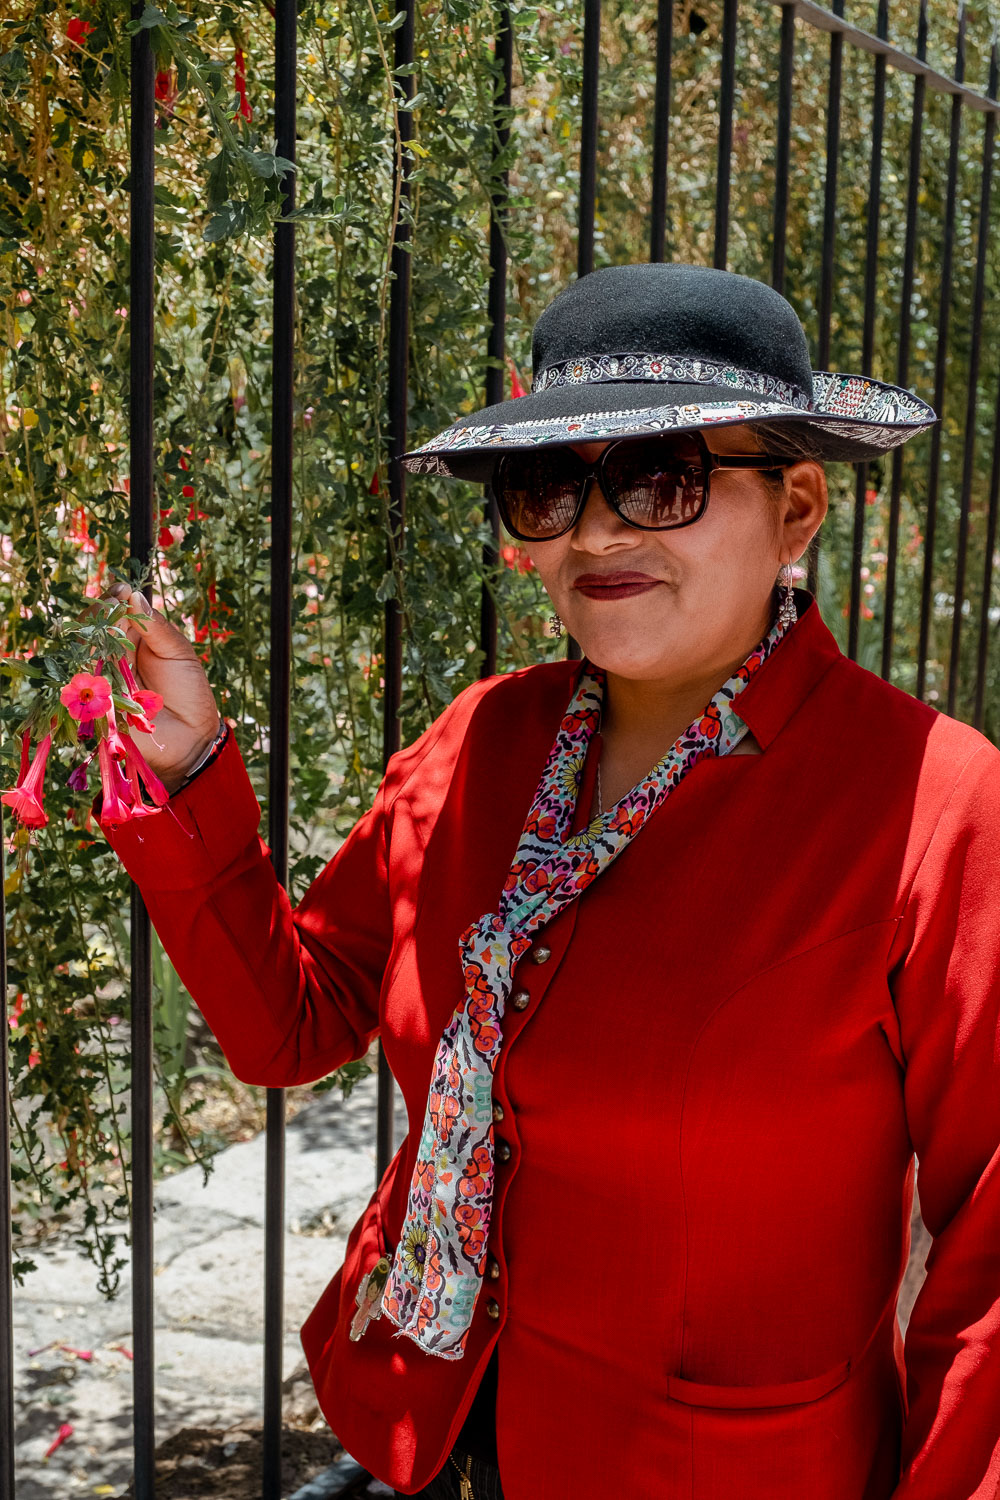 """A guide at the Santa Catalina Monastery, Arequipa. Travel photography and guide by © Natasha Lequepeys for """"And Then I Met Yoko"""". #peru #photoblog #fujifilm"""